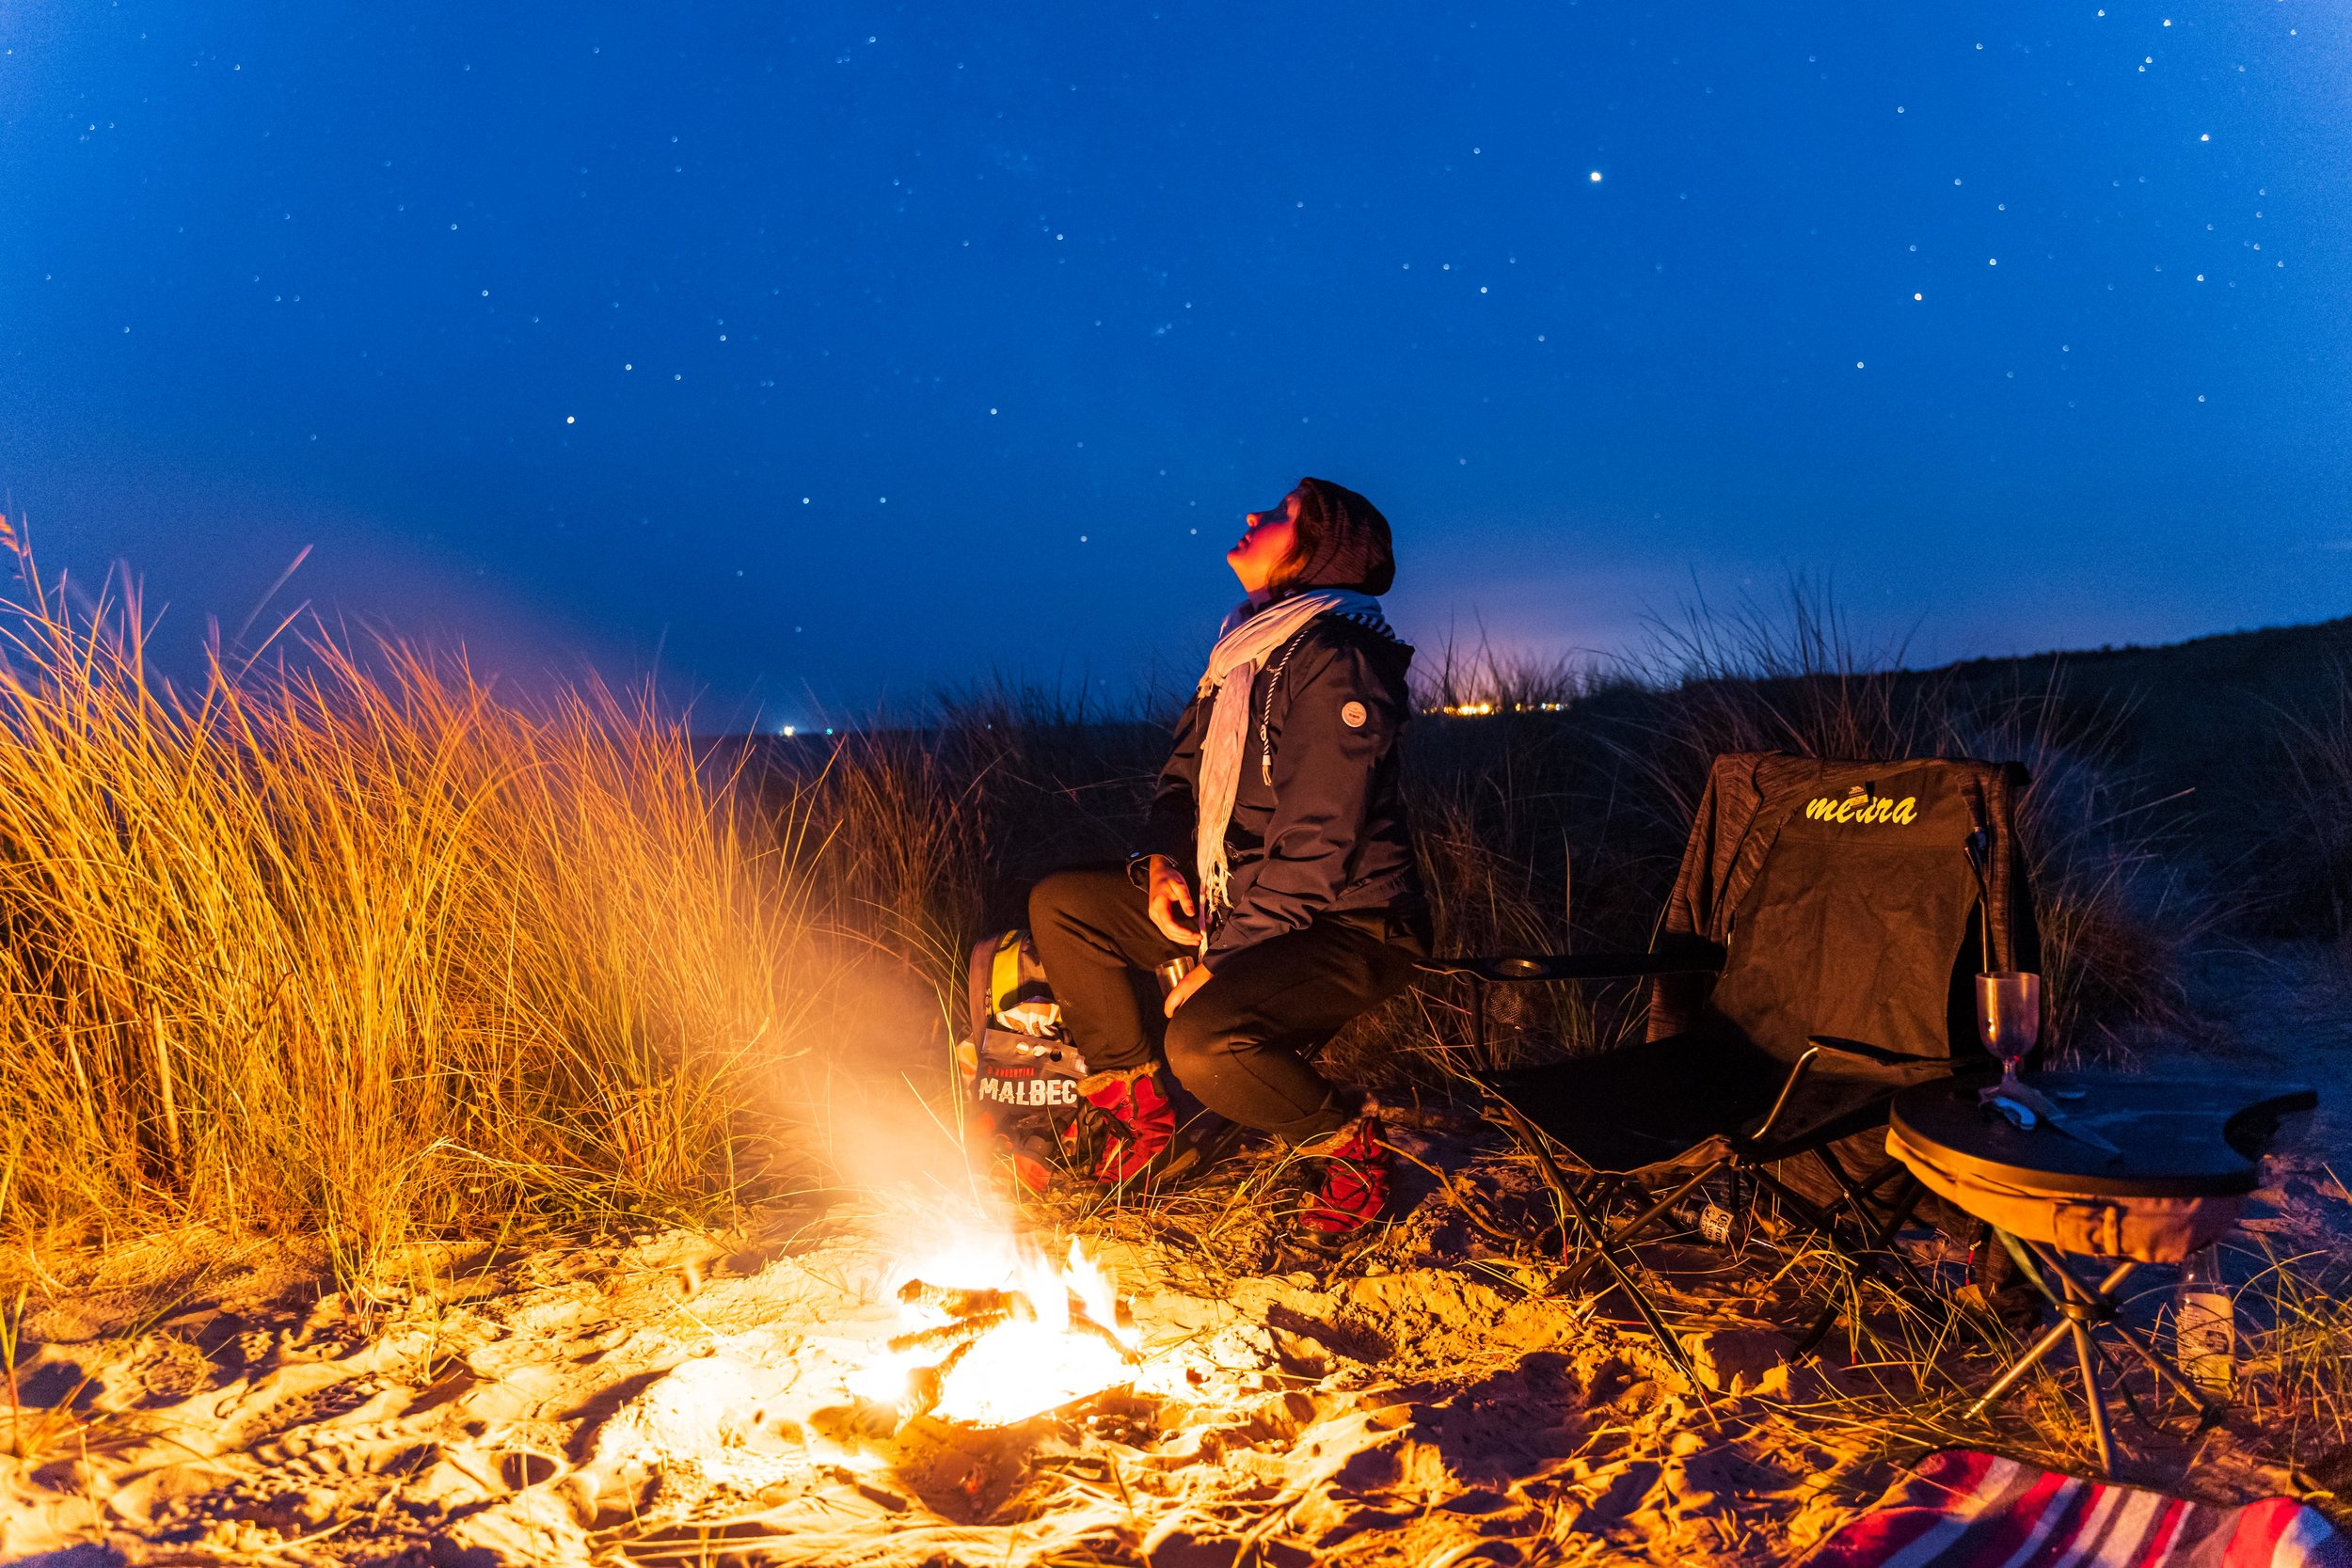 The Raven forest and beach wexford ireland campfire girl under stars.jpg